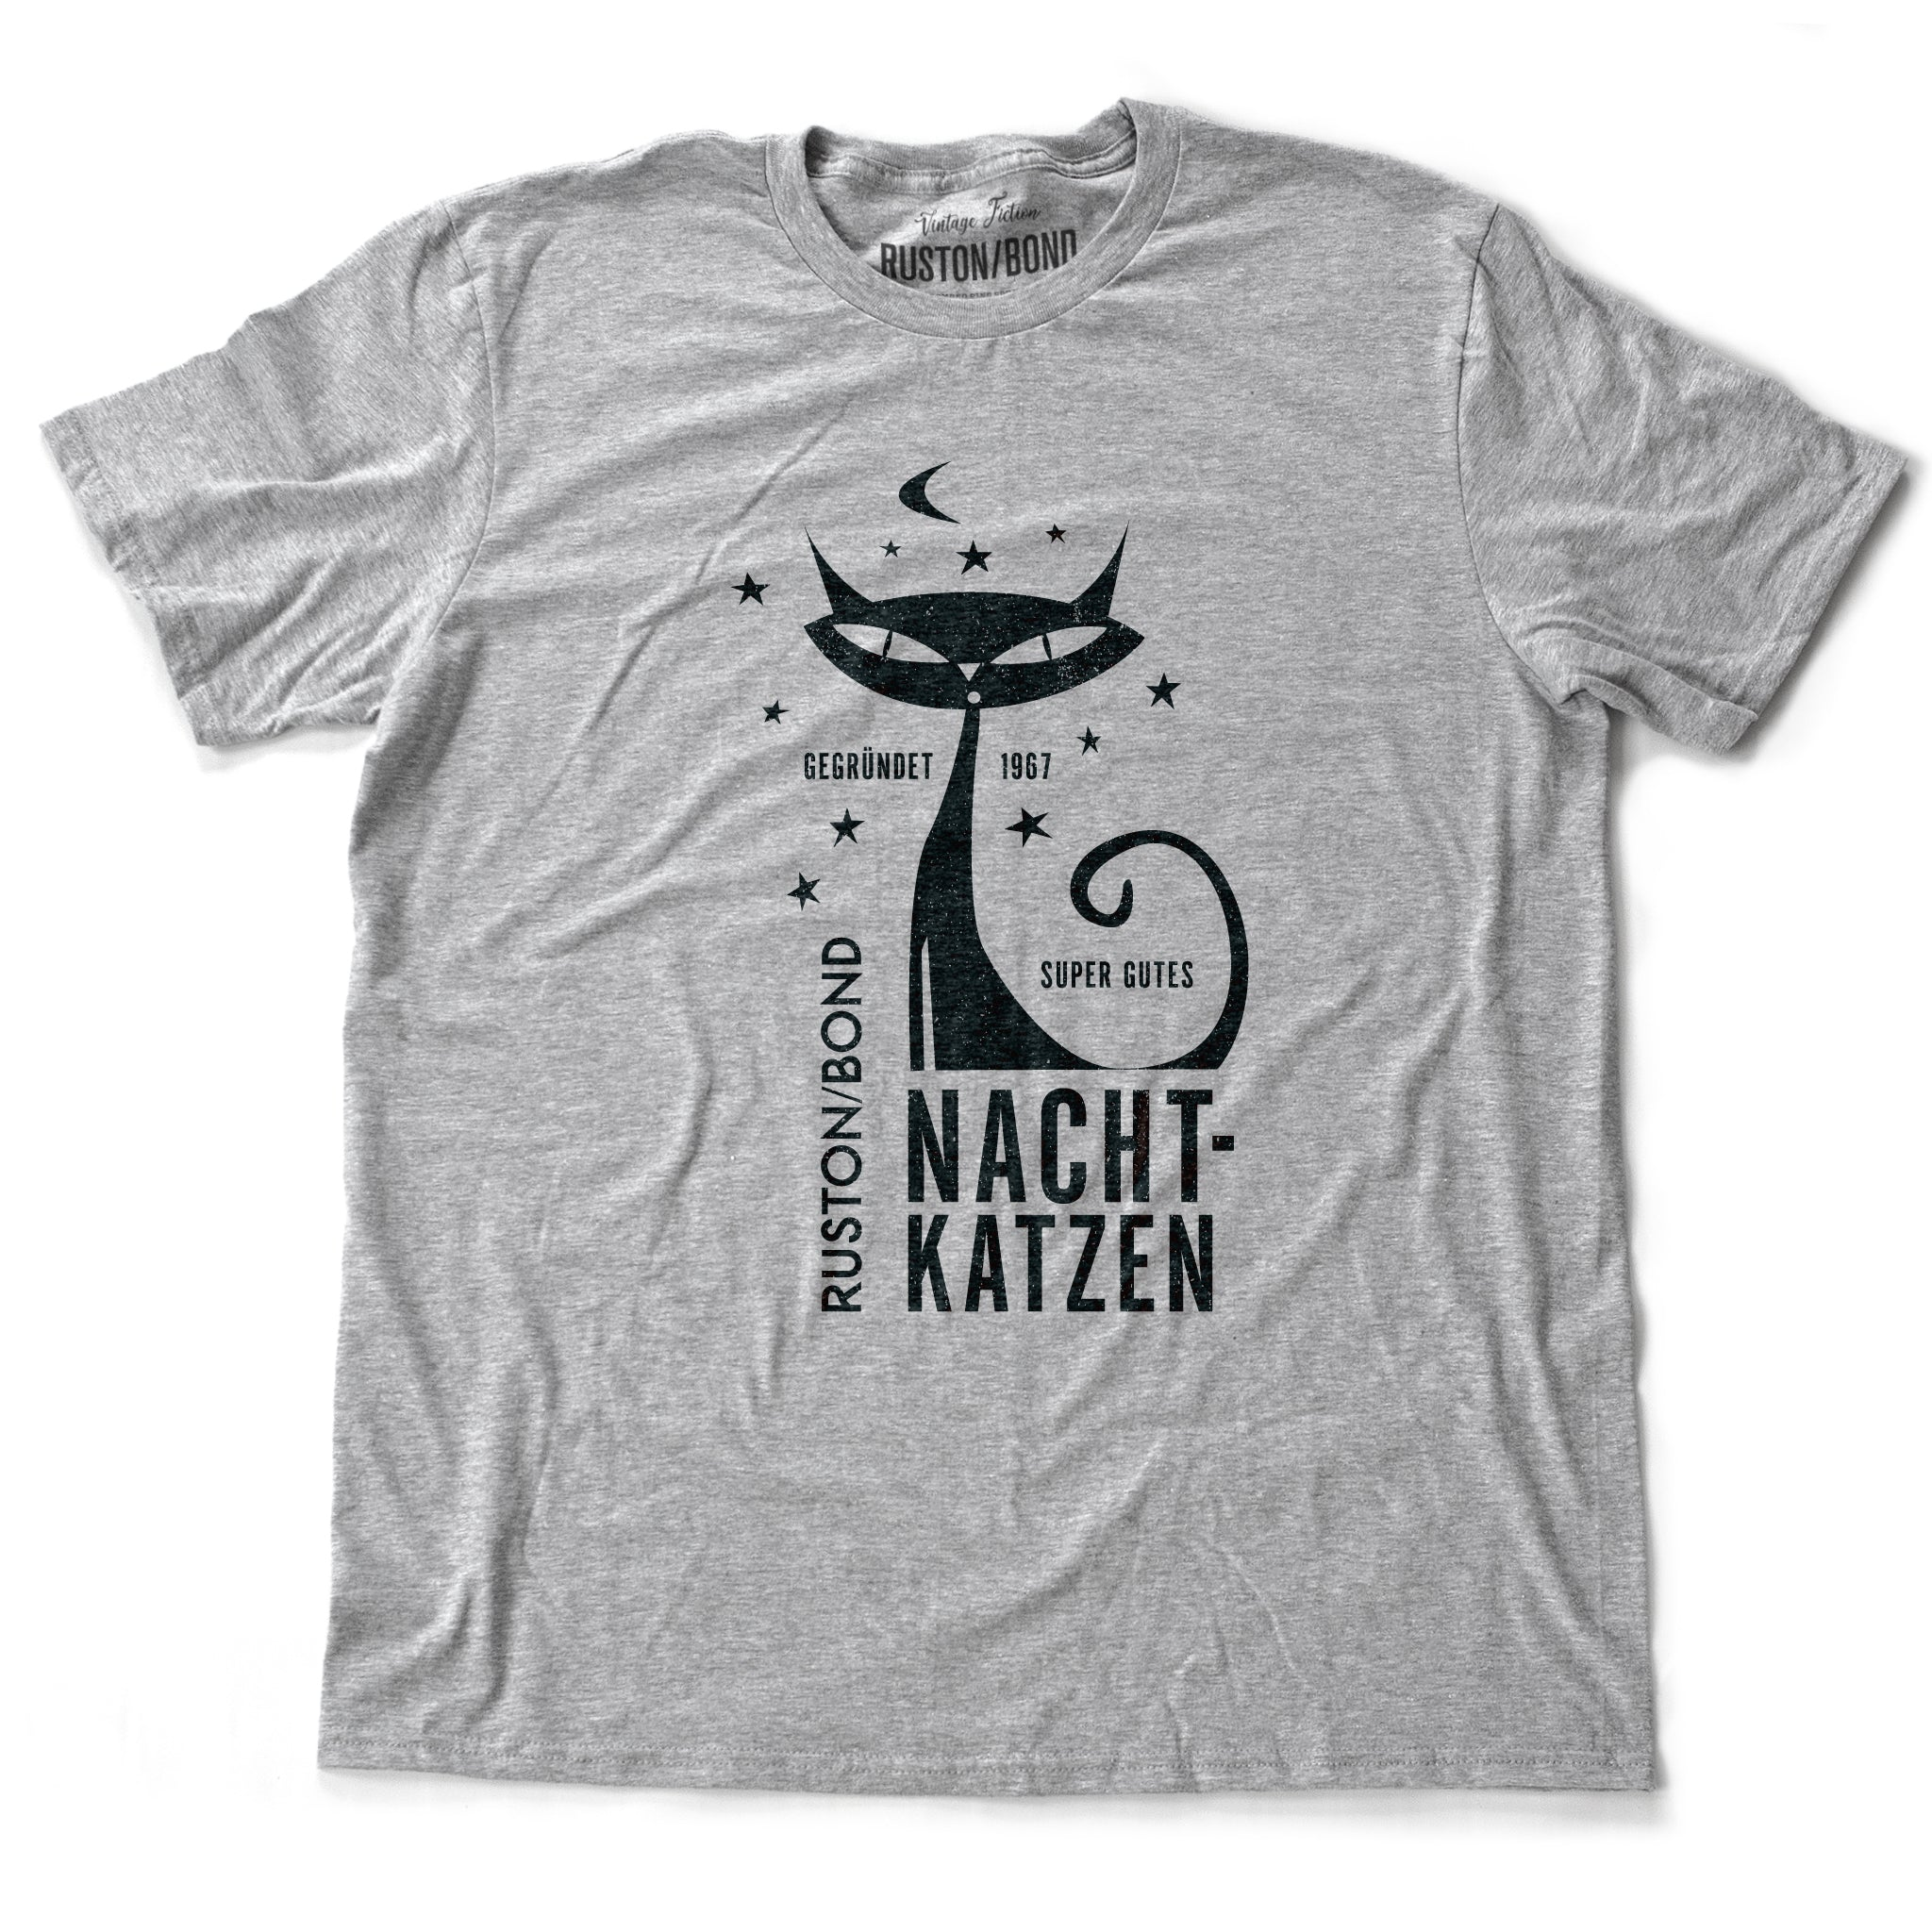 "A vintage-inspired retro design t-shirt in classic Heather Gray, featuring the image of a stylized cat graphic among stars, and the German text ""NACHTKATZEN, Super Gutes"" — translating to ""Night Cats, super good"" and the year 1967, with the Ruston/Bond logo beneath. From wolfsaint.net"